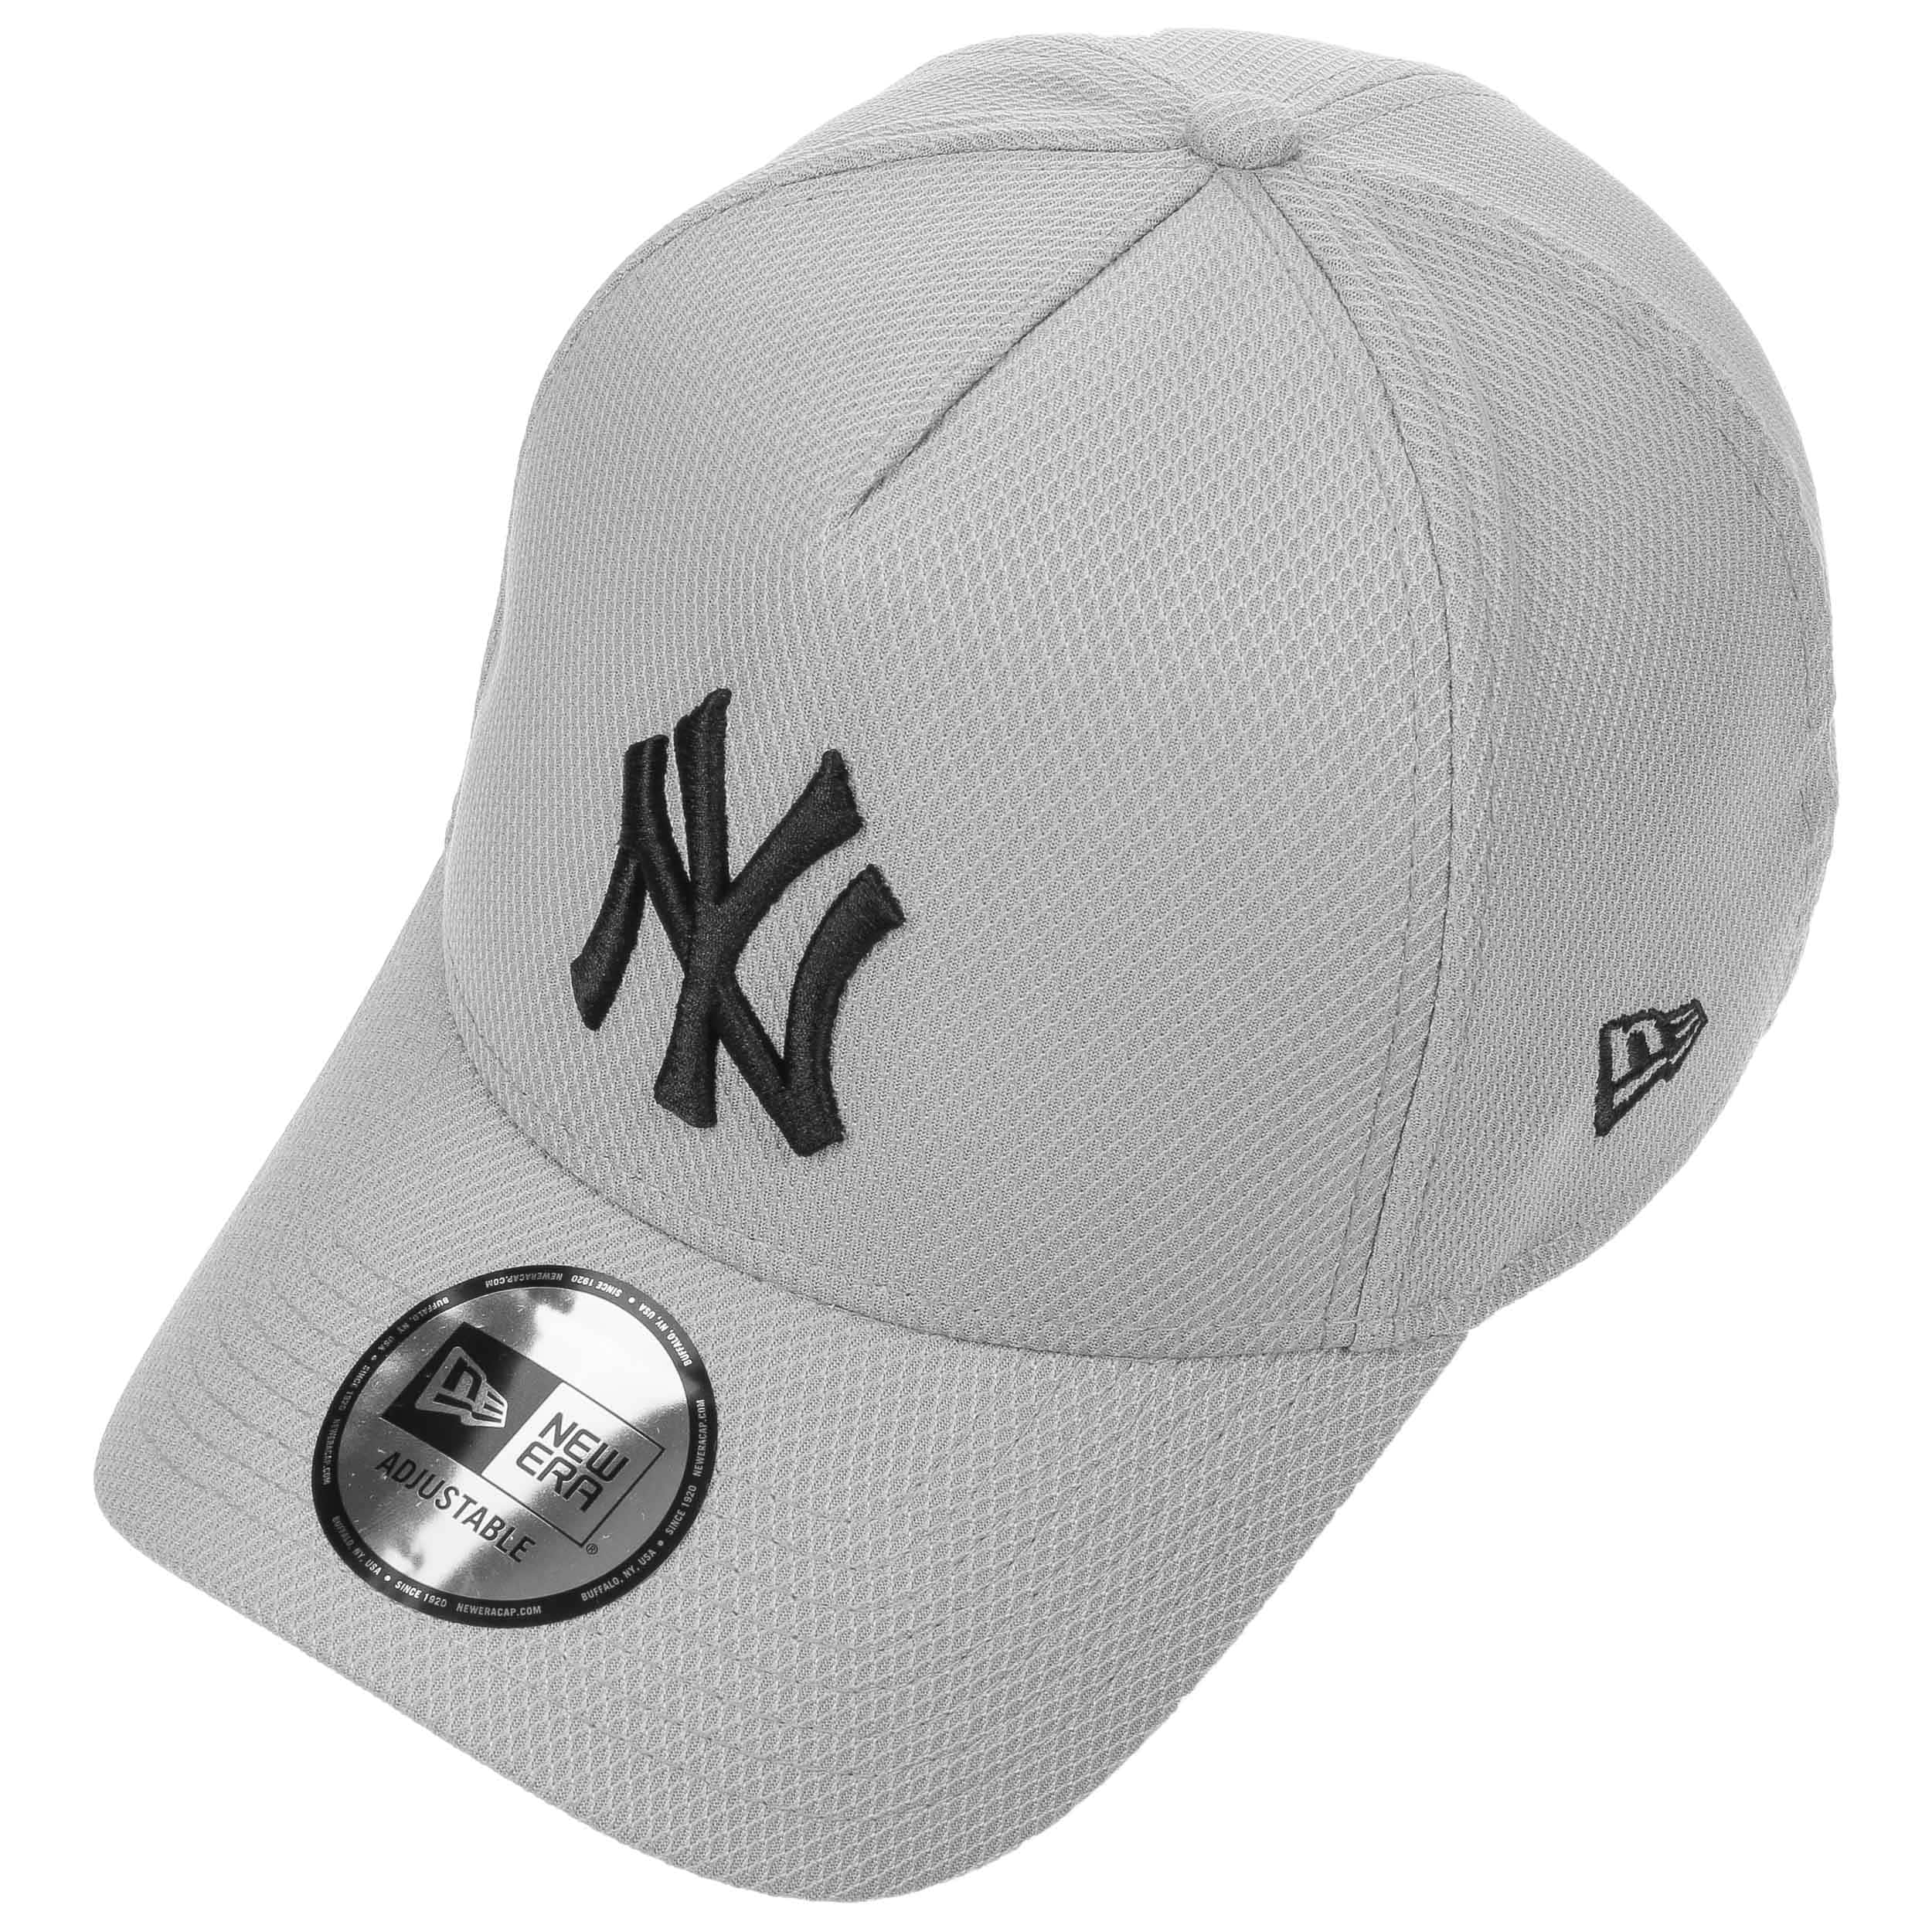 A-Frame Diamond Yankees Cap by New Era - 27,95 €